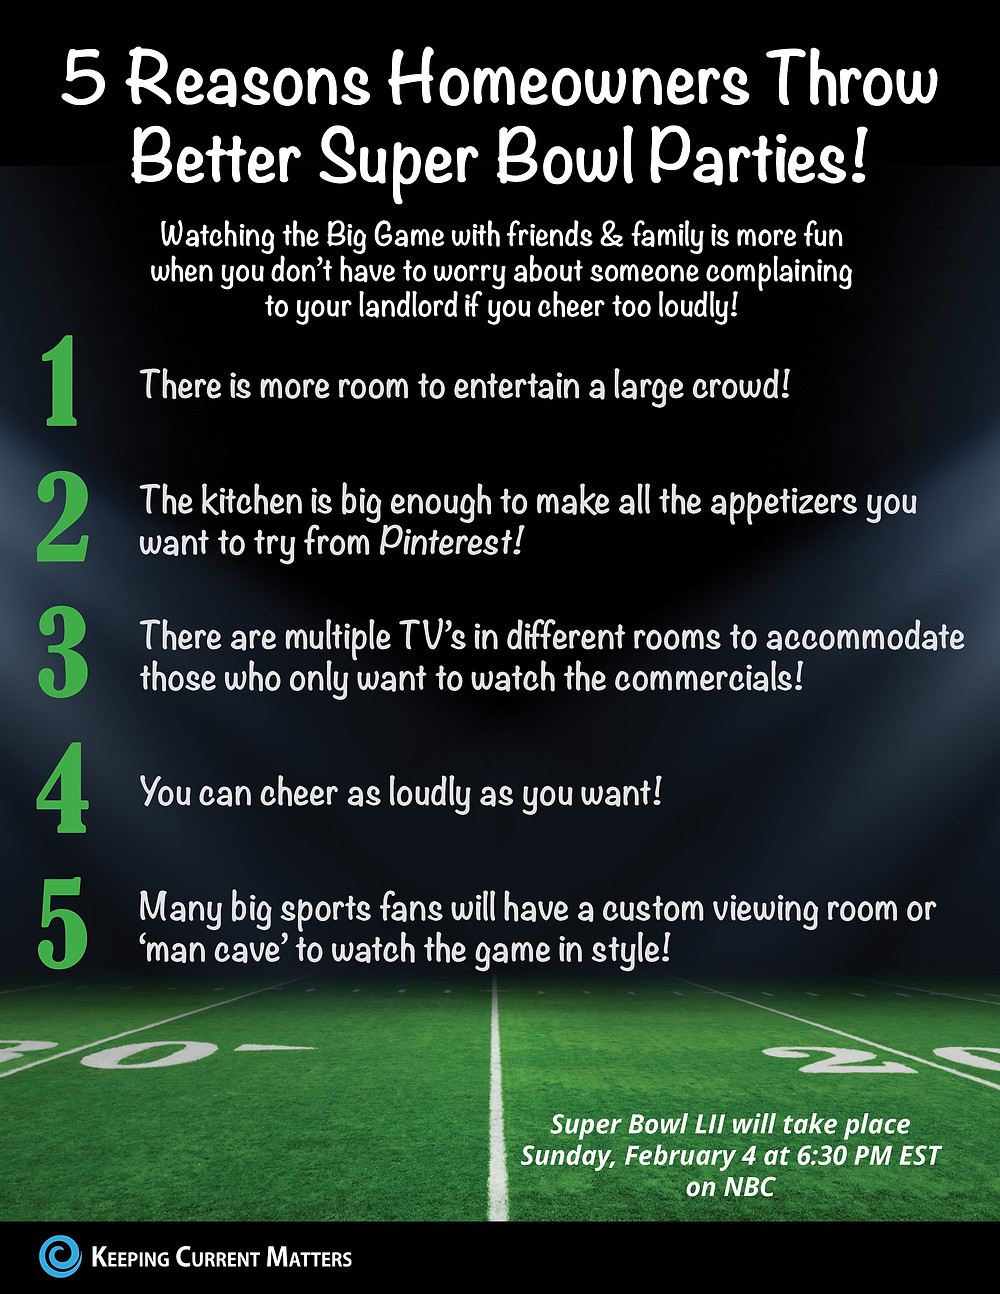 5 Reasons Homeowners Can Throw Better Super Bowl Parties! [INFOGRAPHIC] | Keeping Current Matters